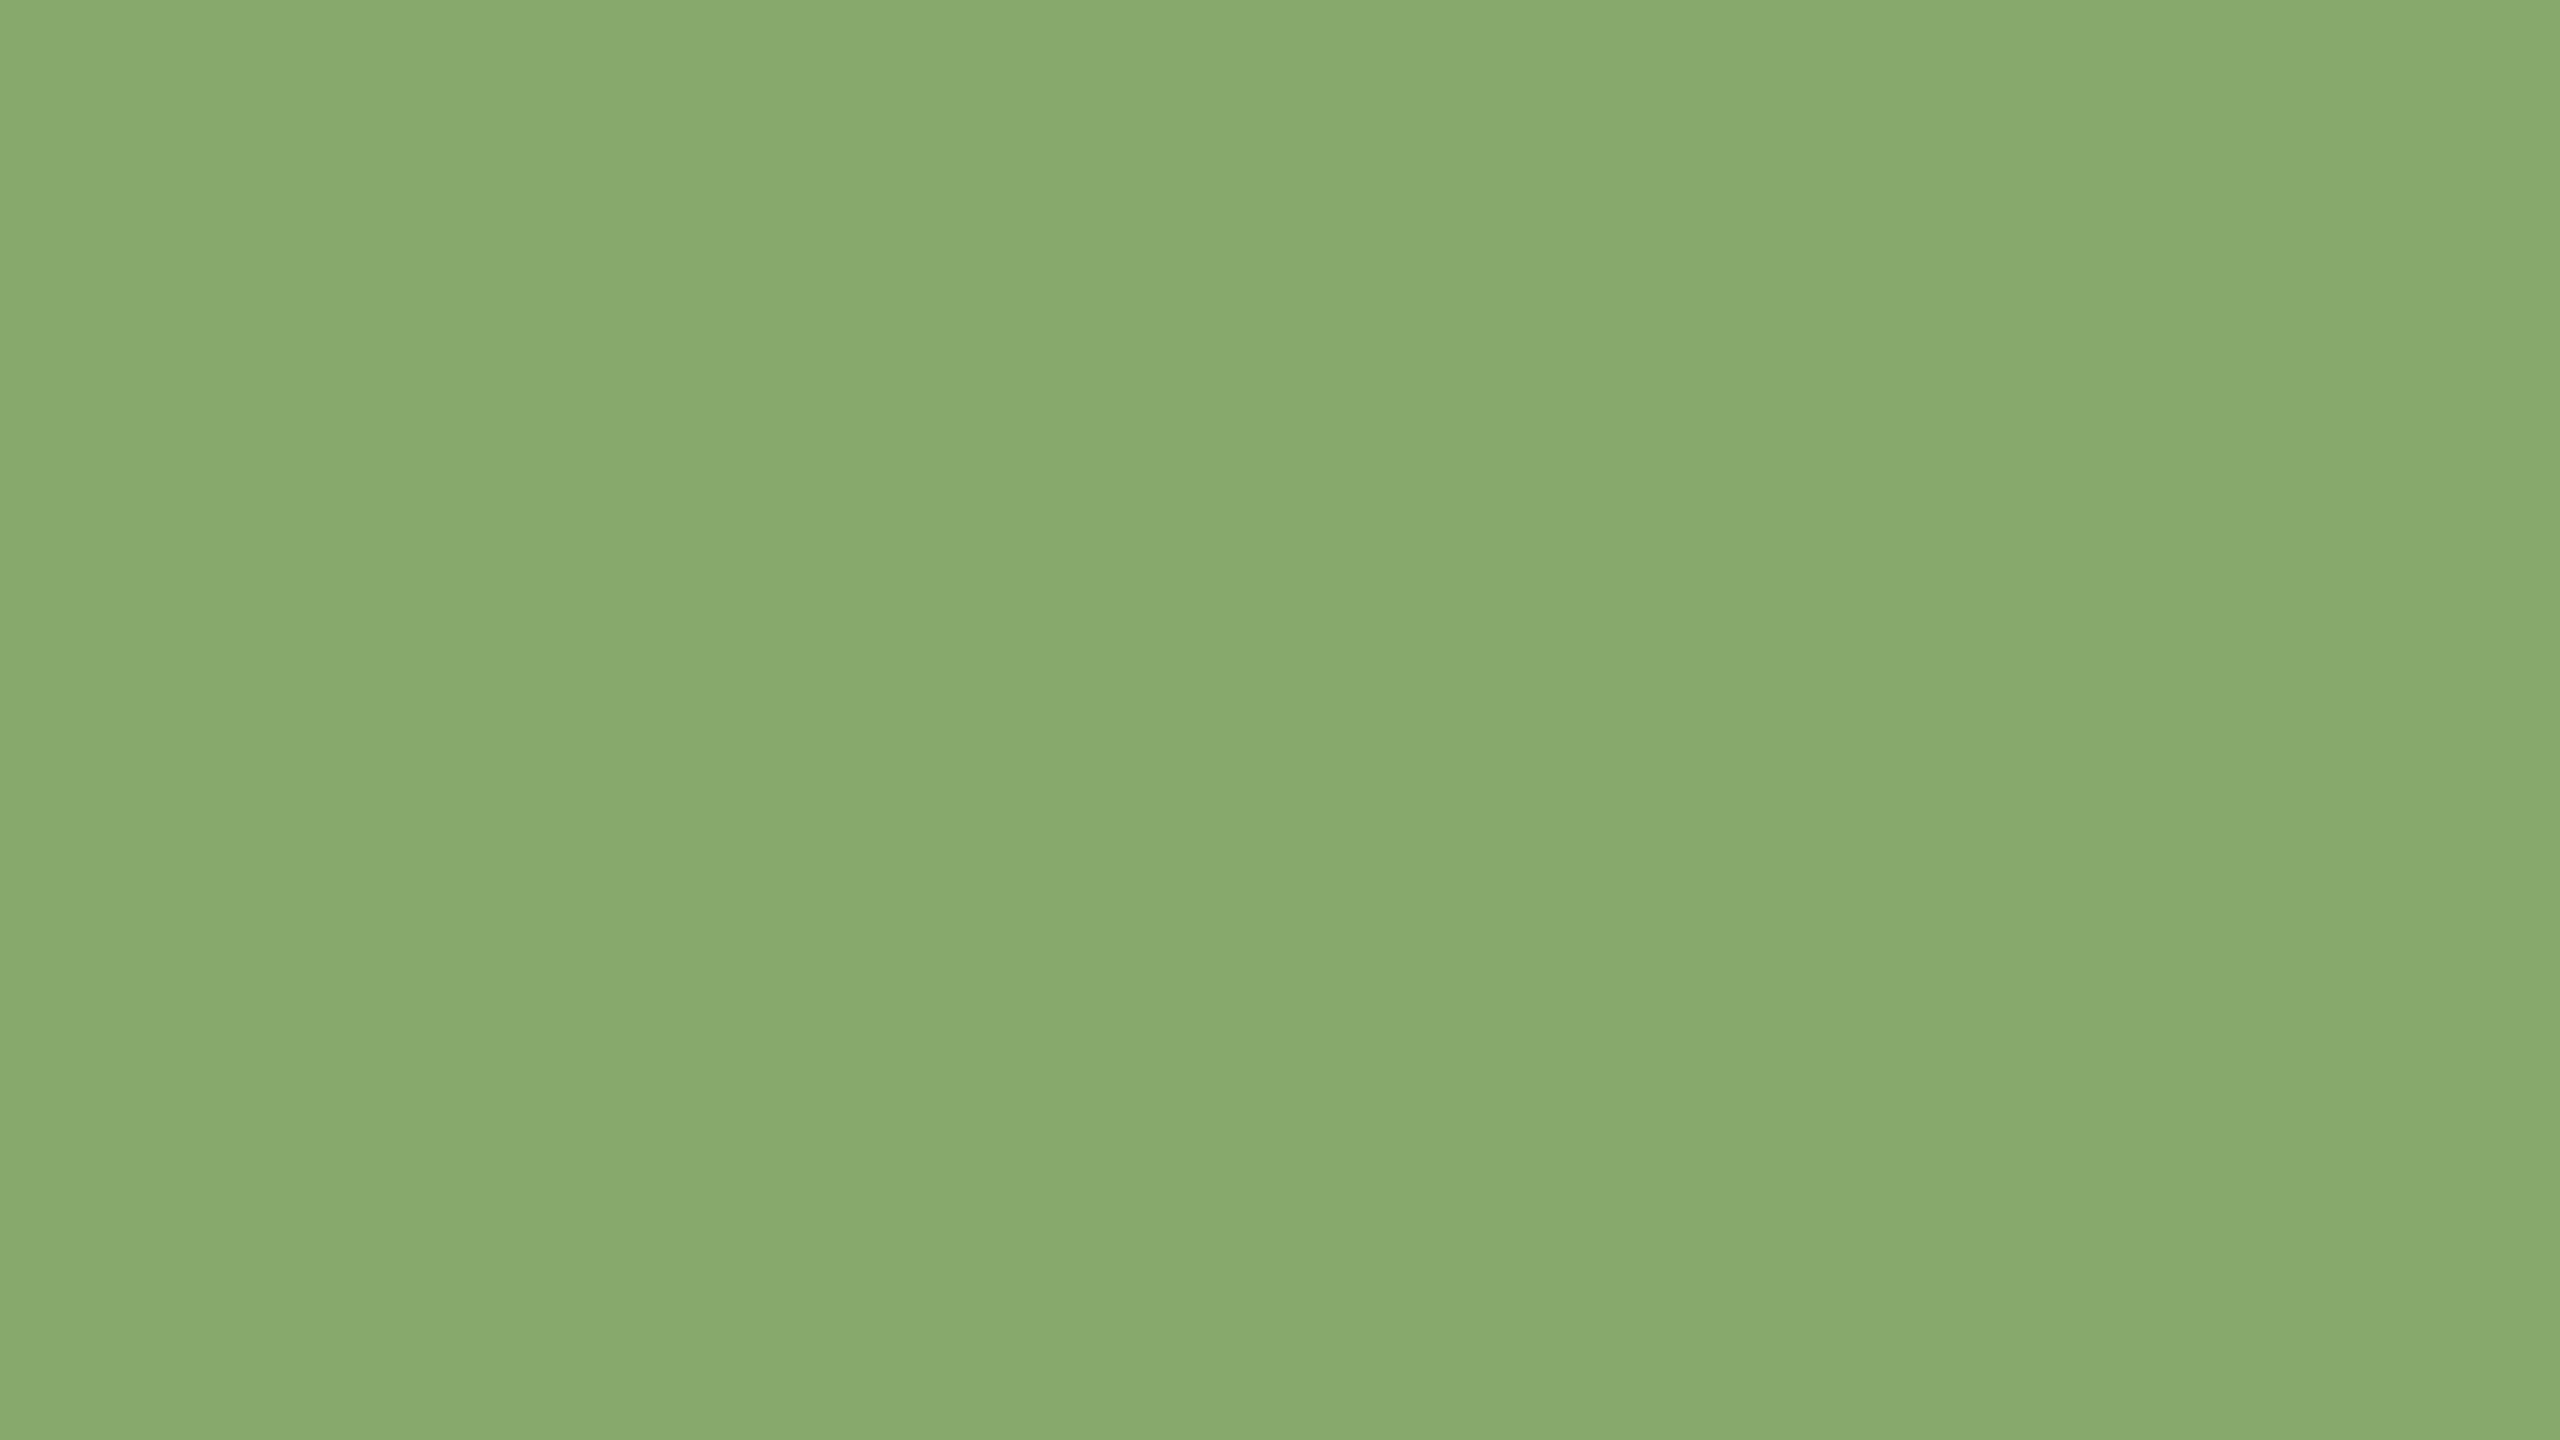 2560x1440 Asparagus Solid Color Background